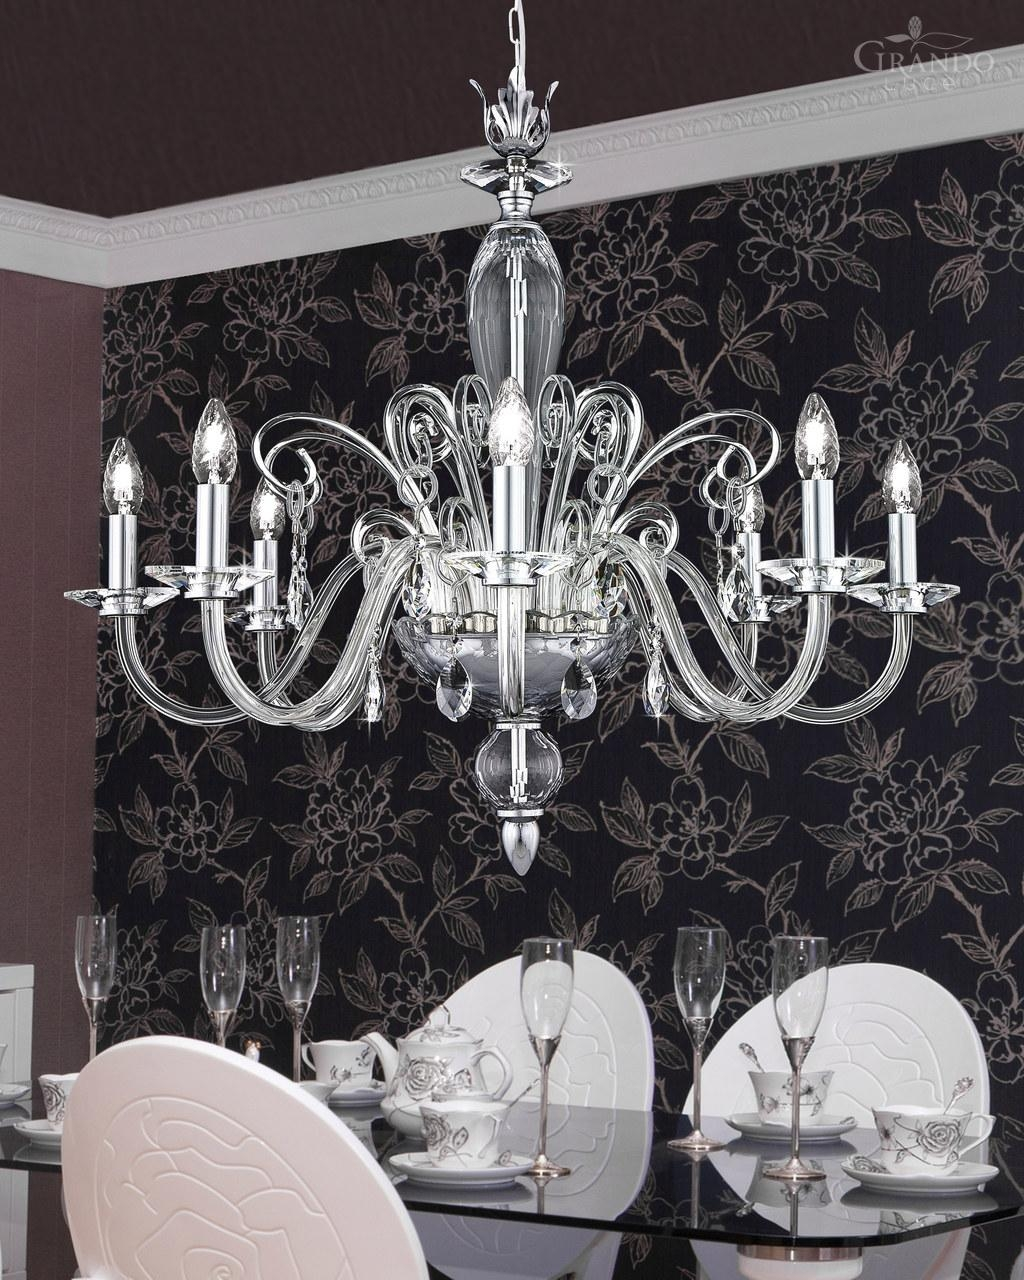 1208 Ch Chrome Crystal Chandelier With Swarovski Elements In Chrome And Crystal Chandelier (#2 of 12)